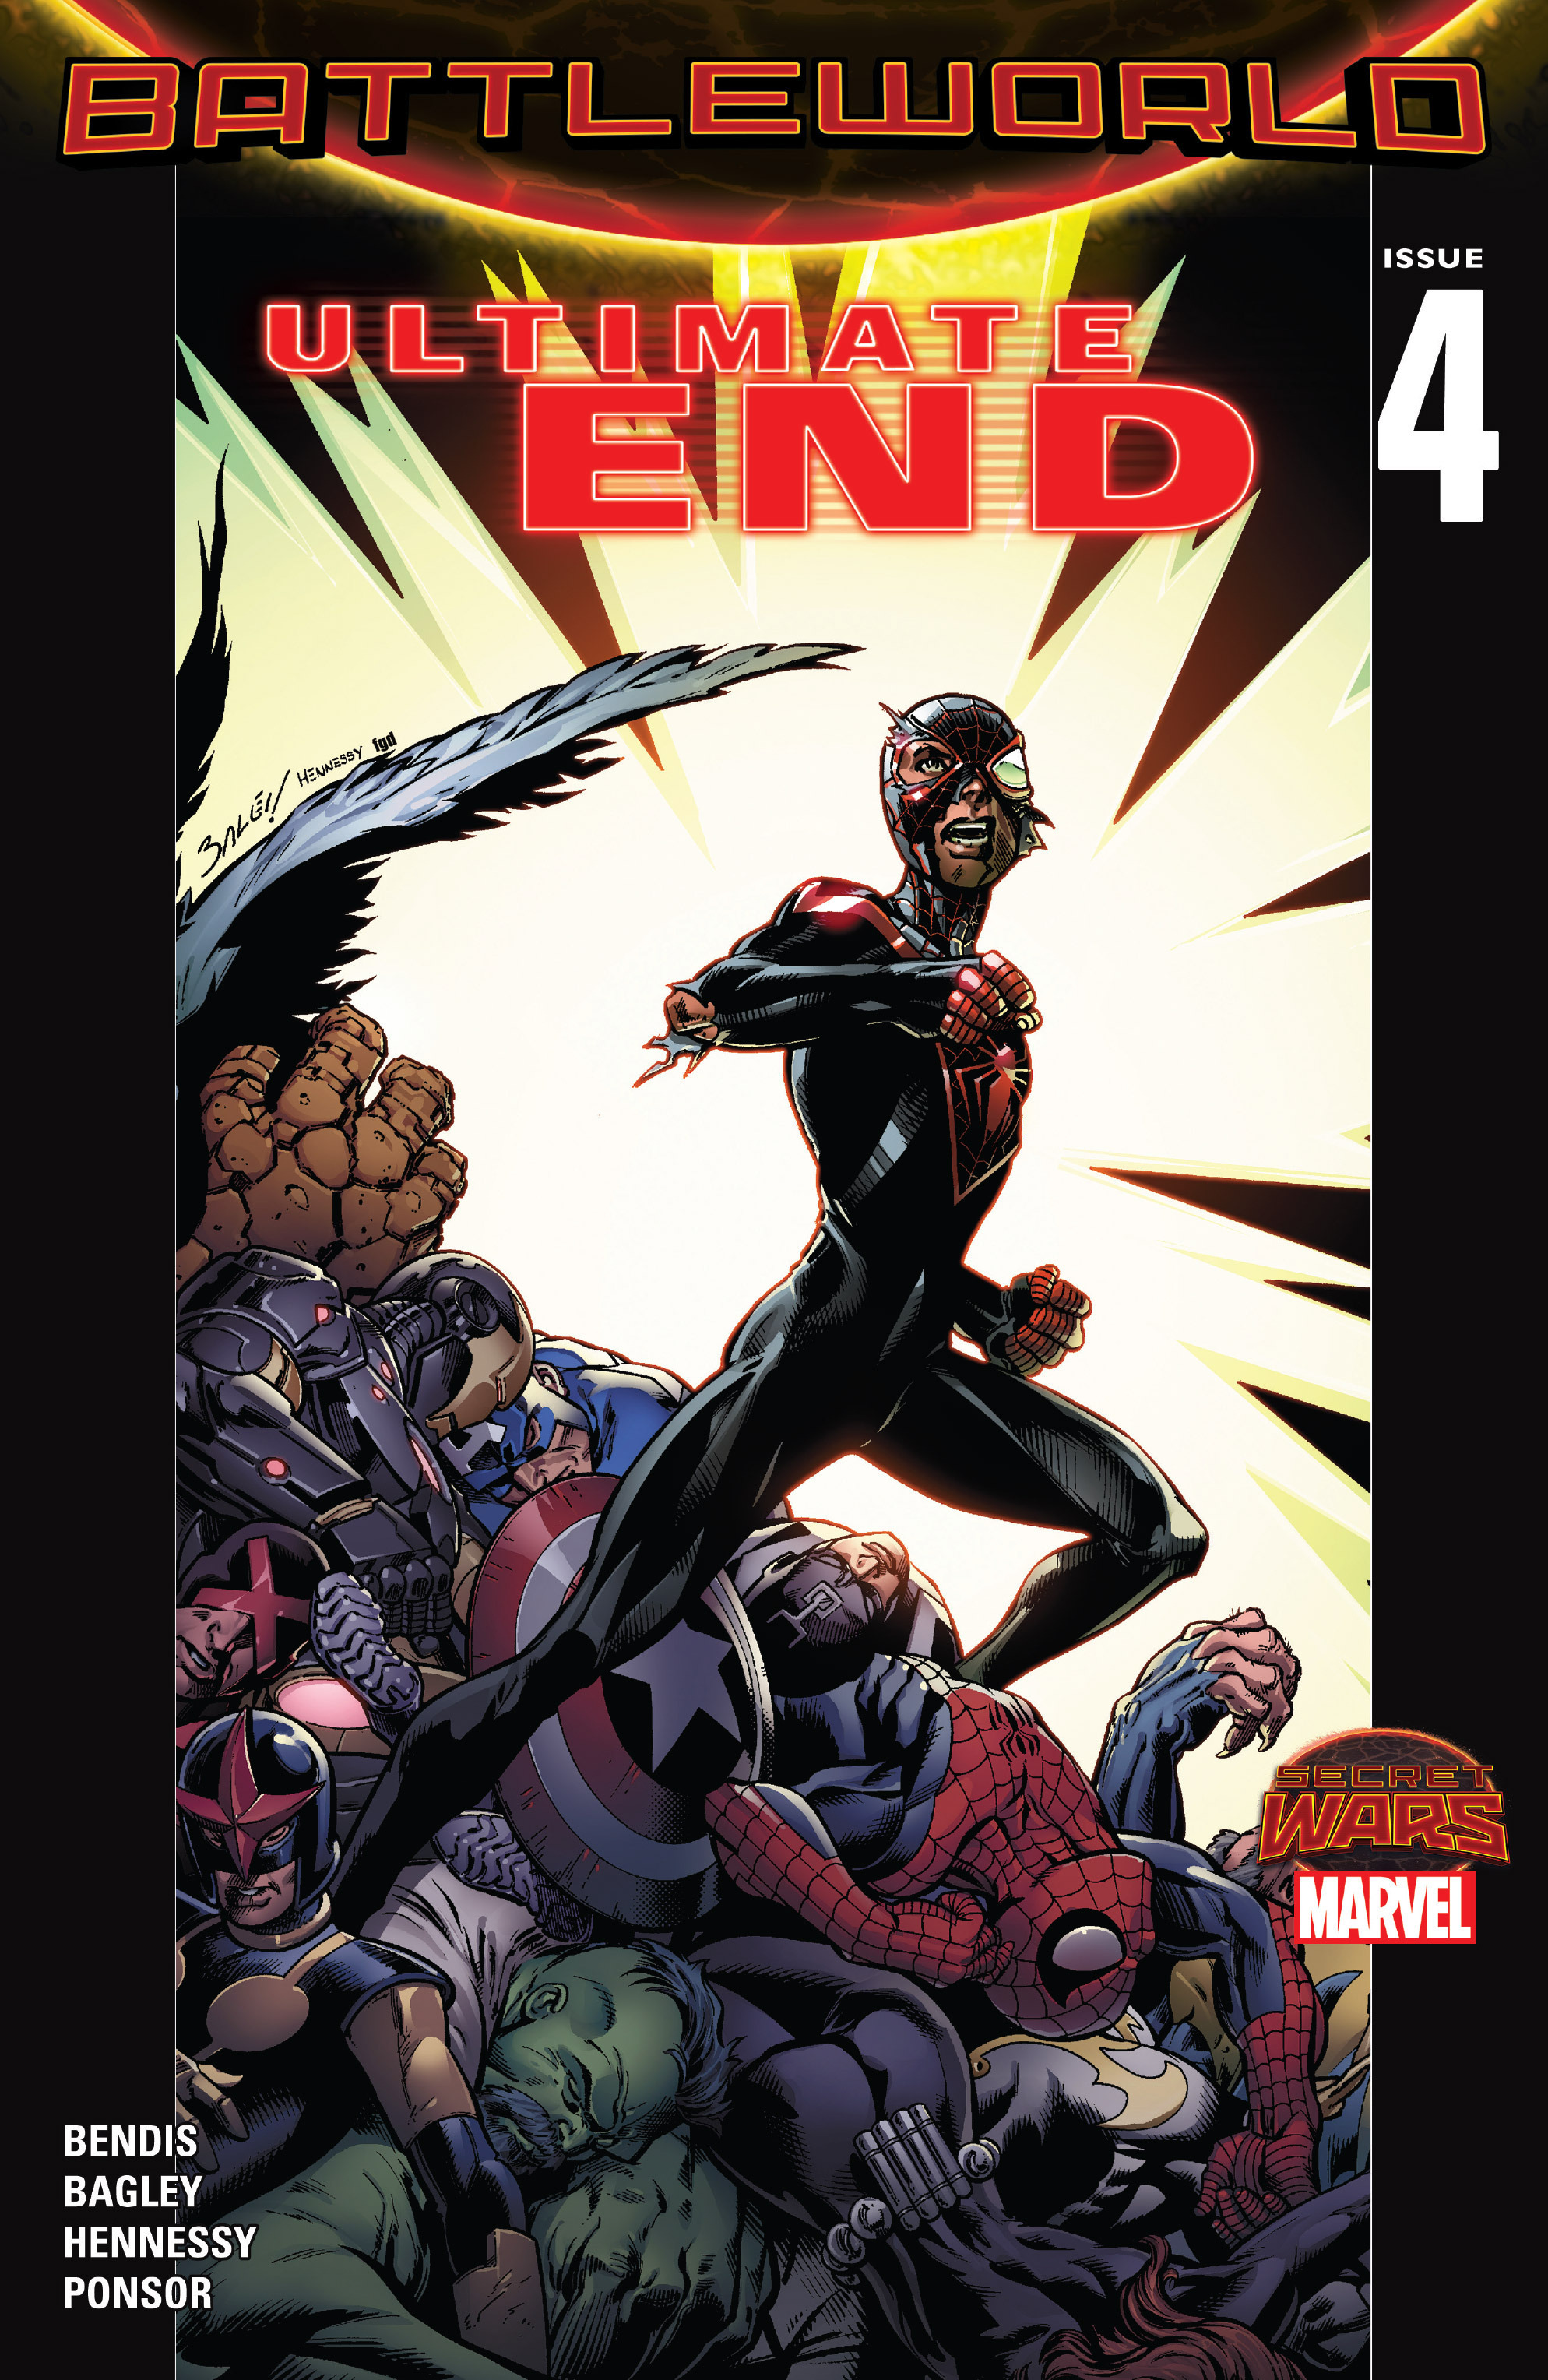 Read online Ultimate End comic -  Issue #4 - 1